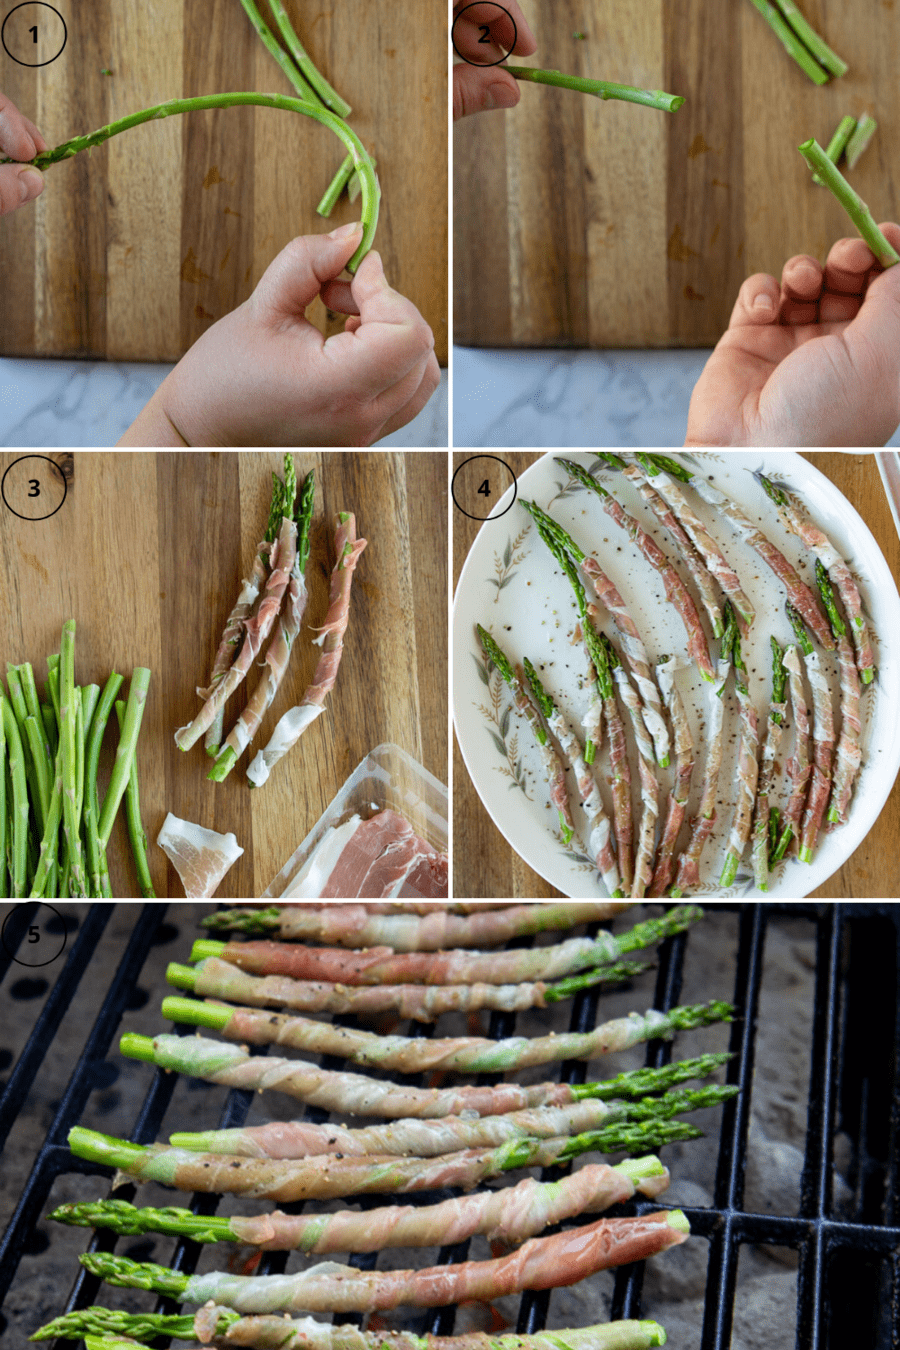 asparagus being bent and snapped to remove the tough ends, then the spears being wrapped in prosciutto and brushed with oil, then all of them on the grill.